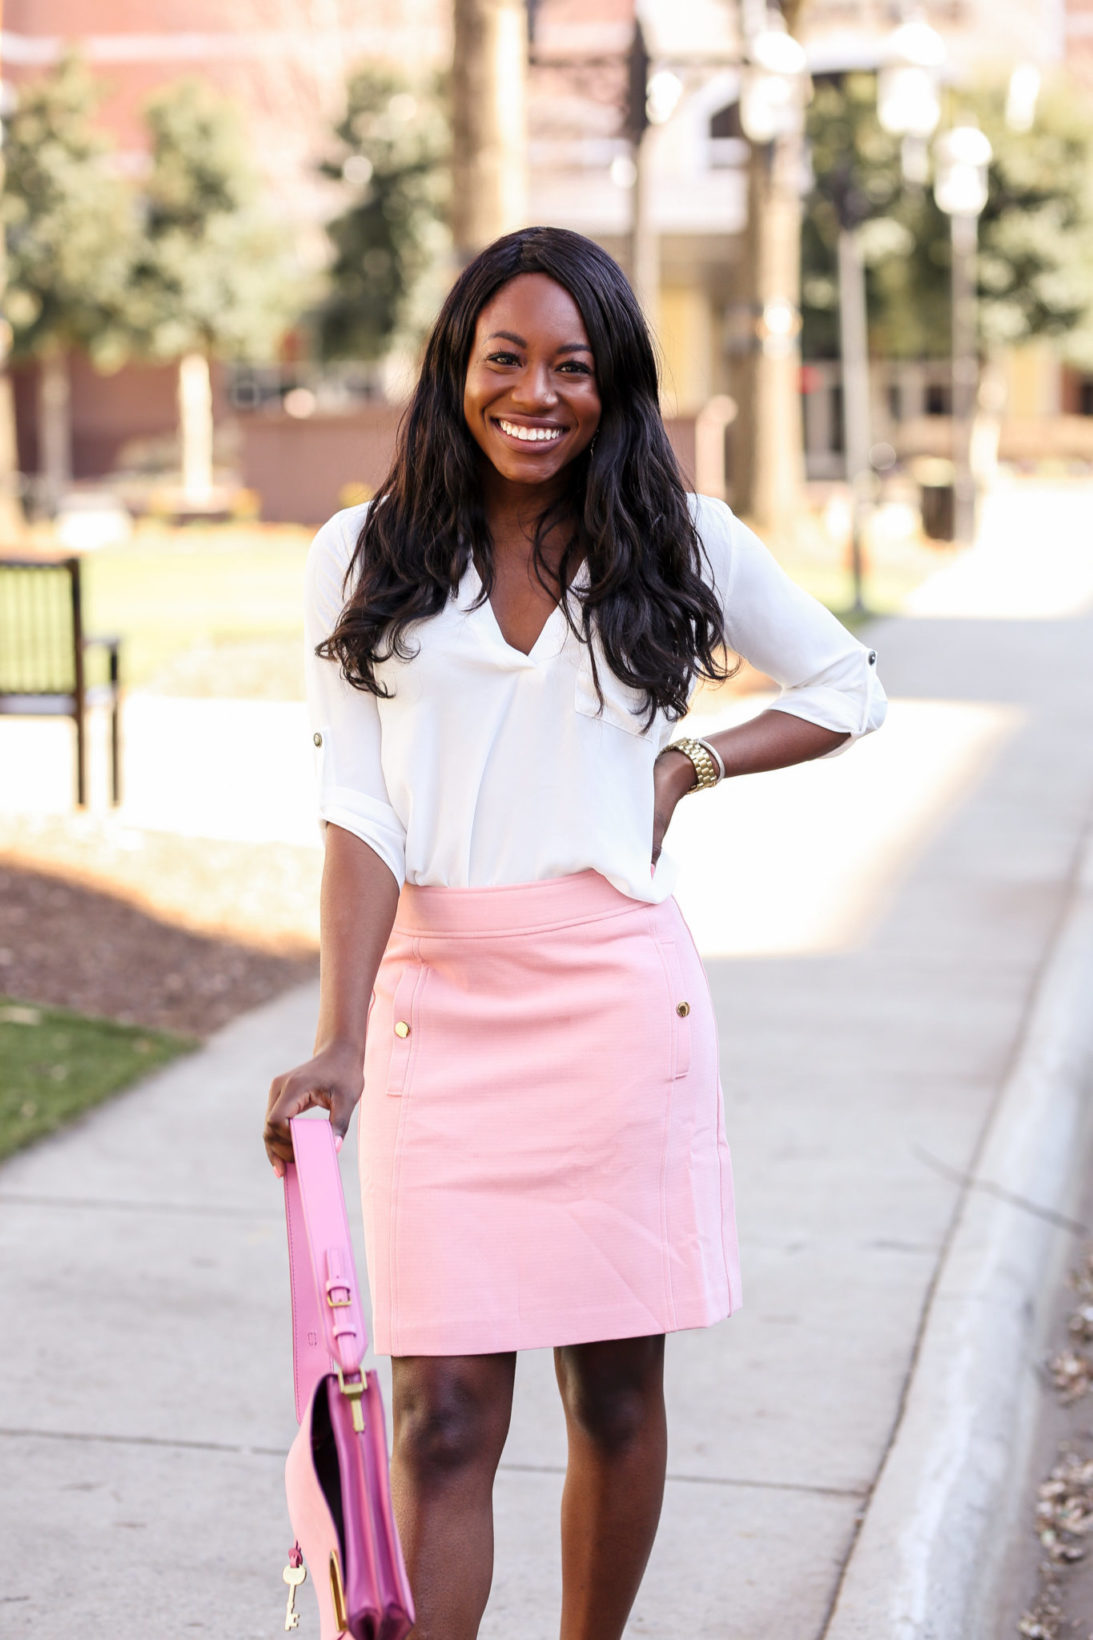 How Fashion Blogging Helped Me Land An Internship at a Fortune 500